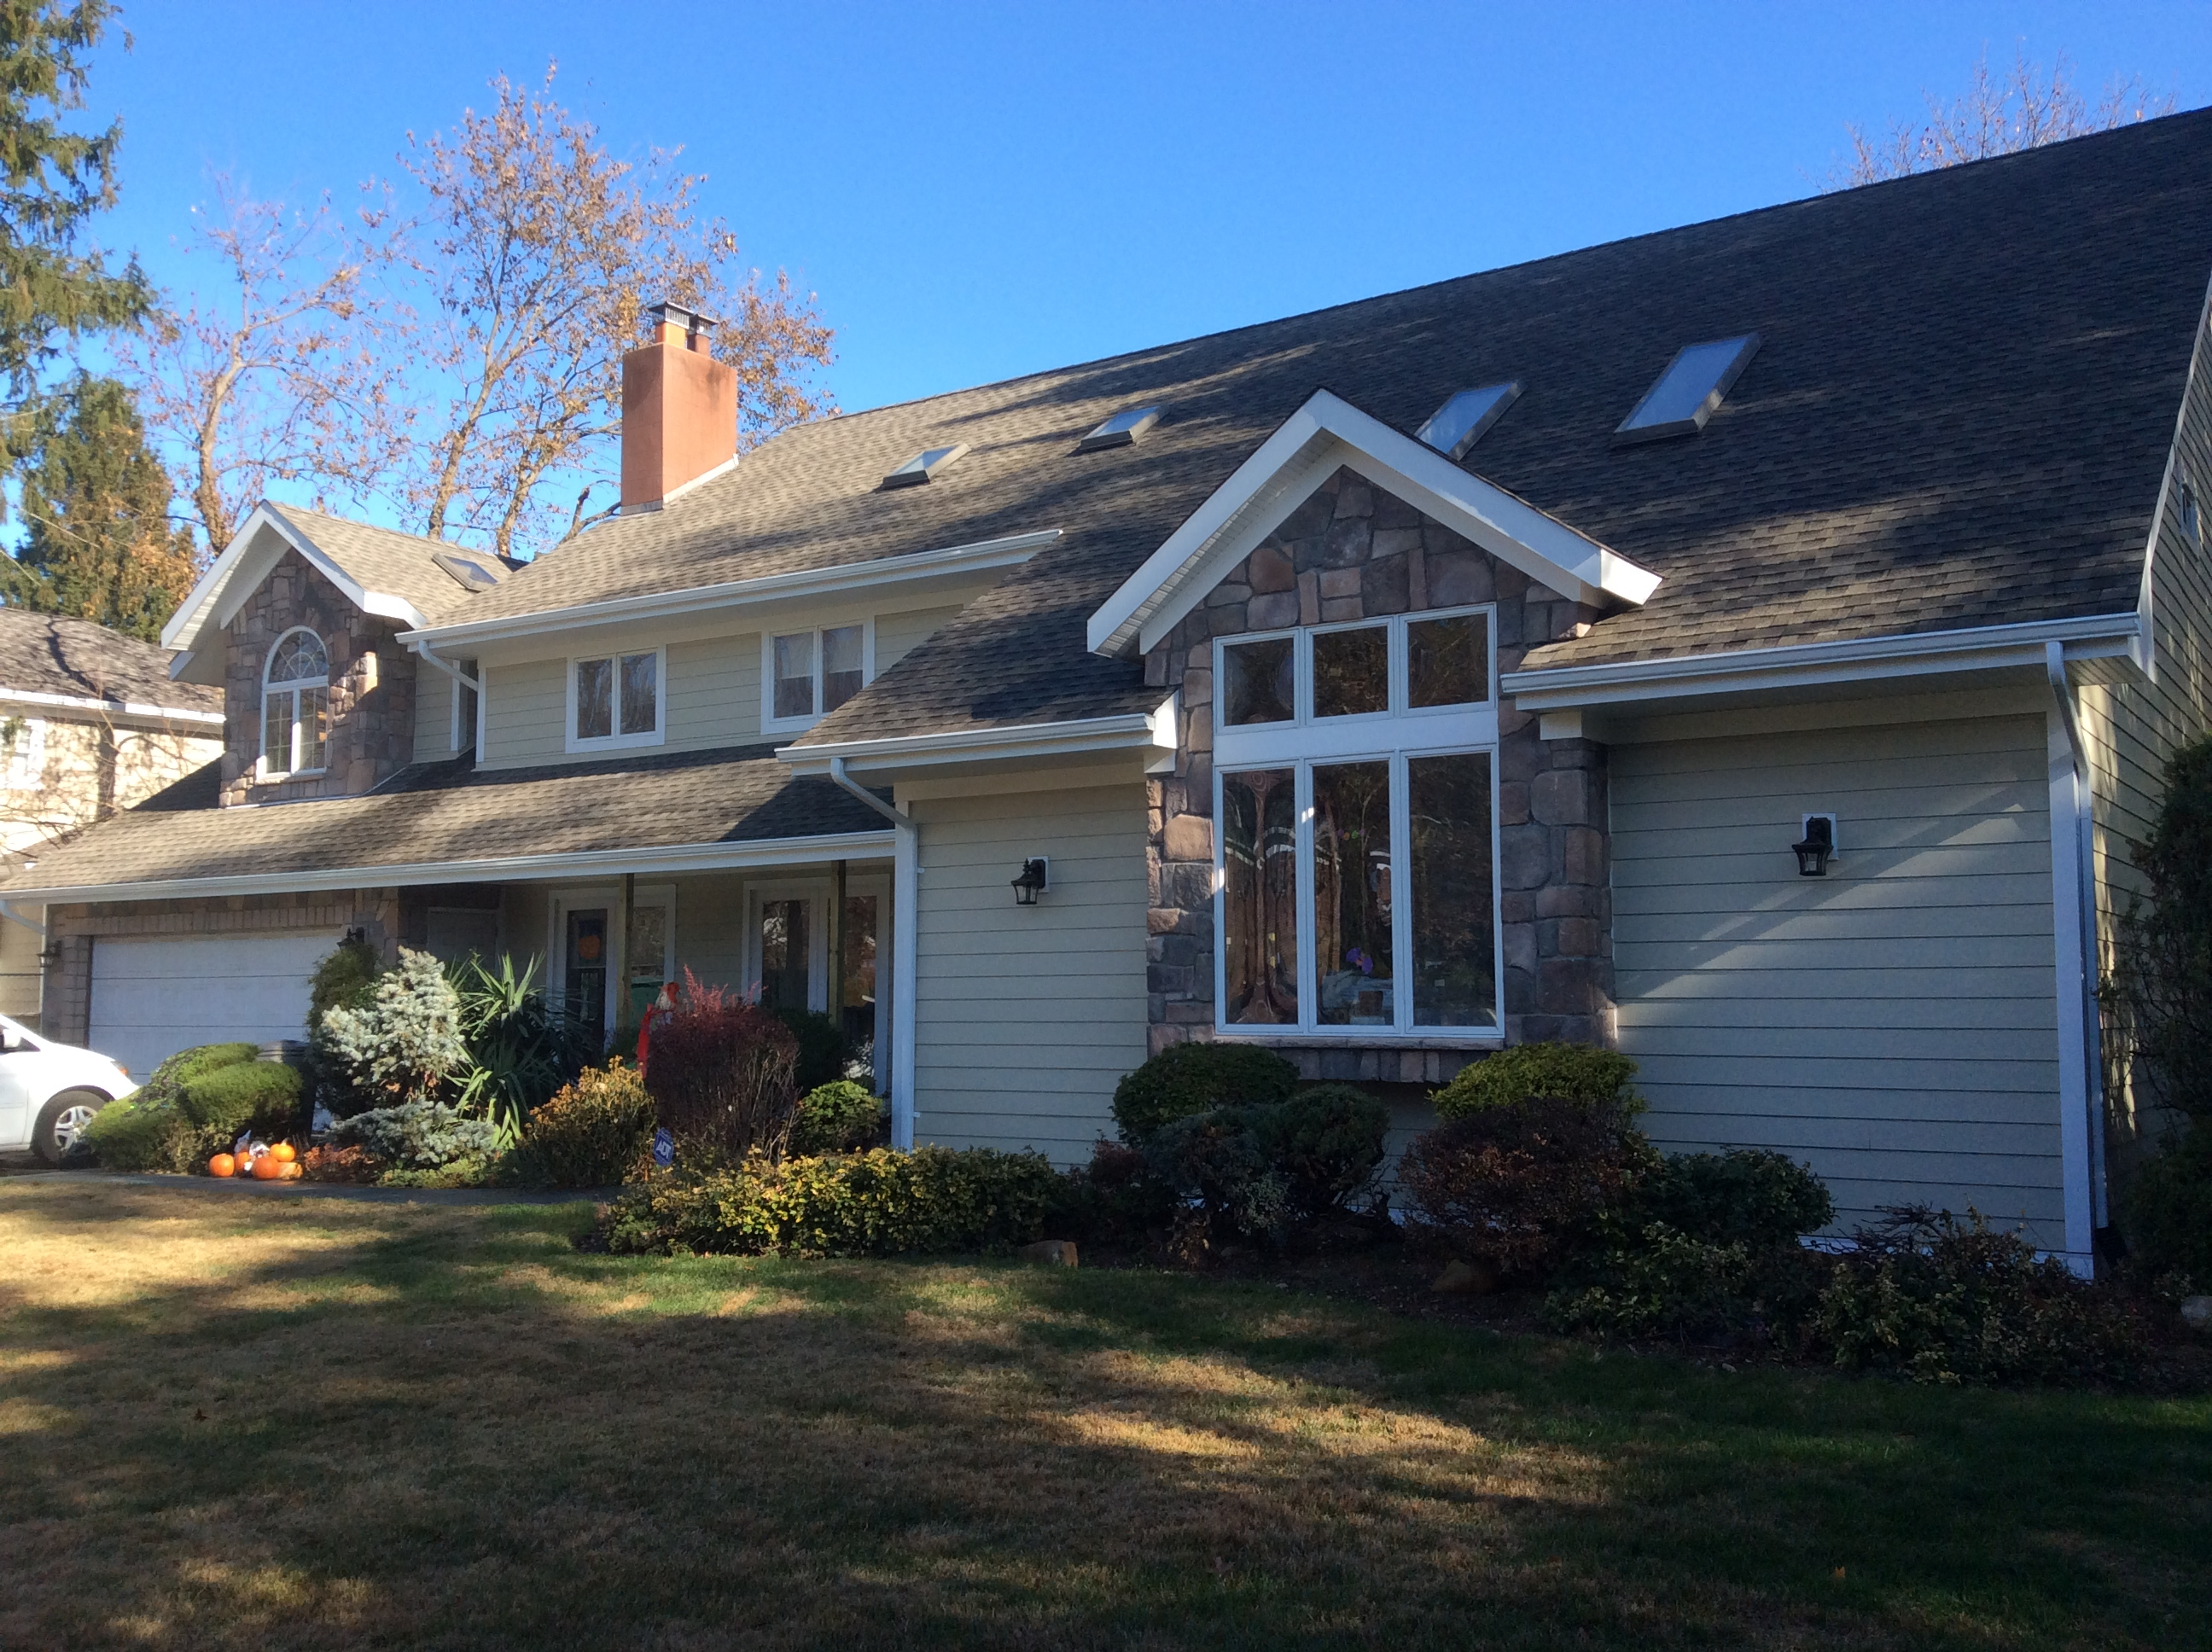 Exterior Siding Repair And Installation Good Guys - Home-exterior-siding